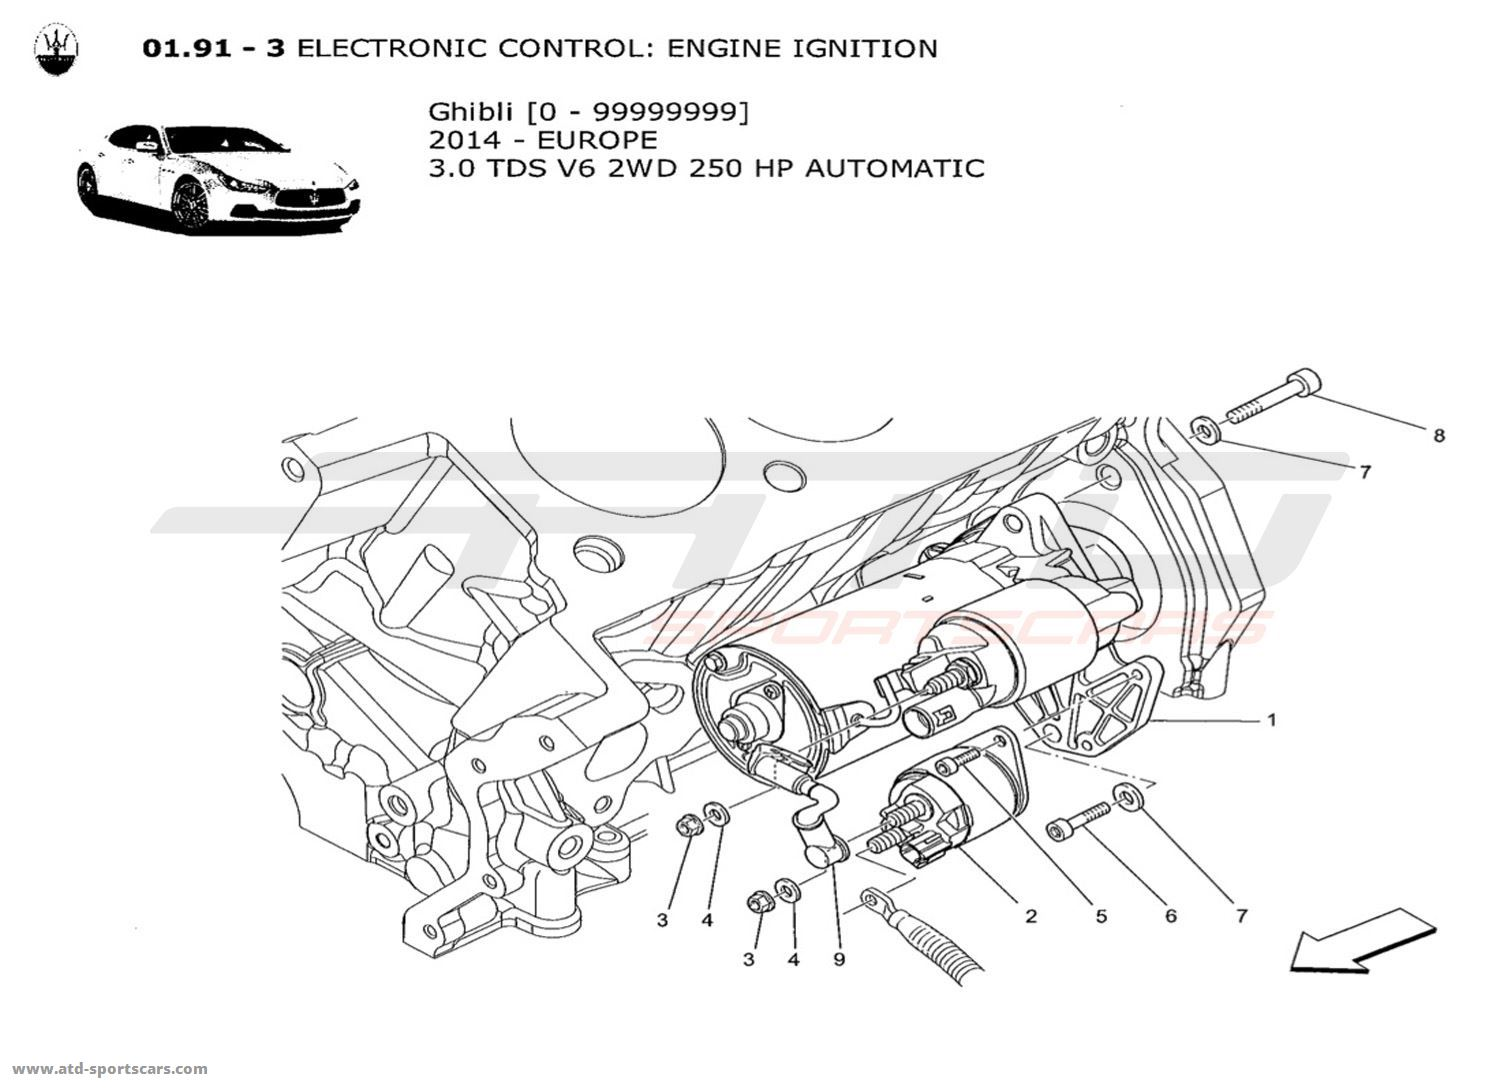 Maserati Ghibli V6 3 0lsel Auto Electronic Control Engine Ignition Si Parts At Atd